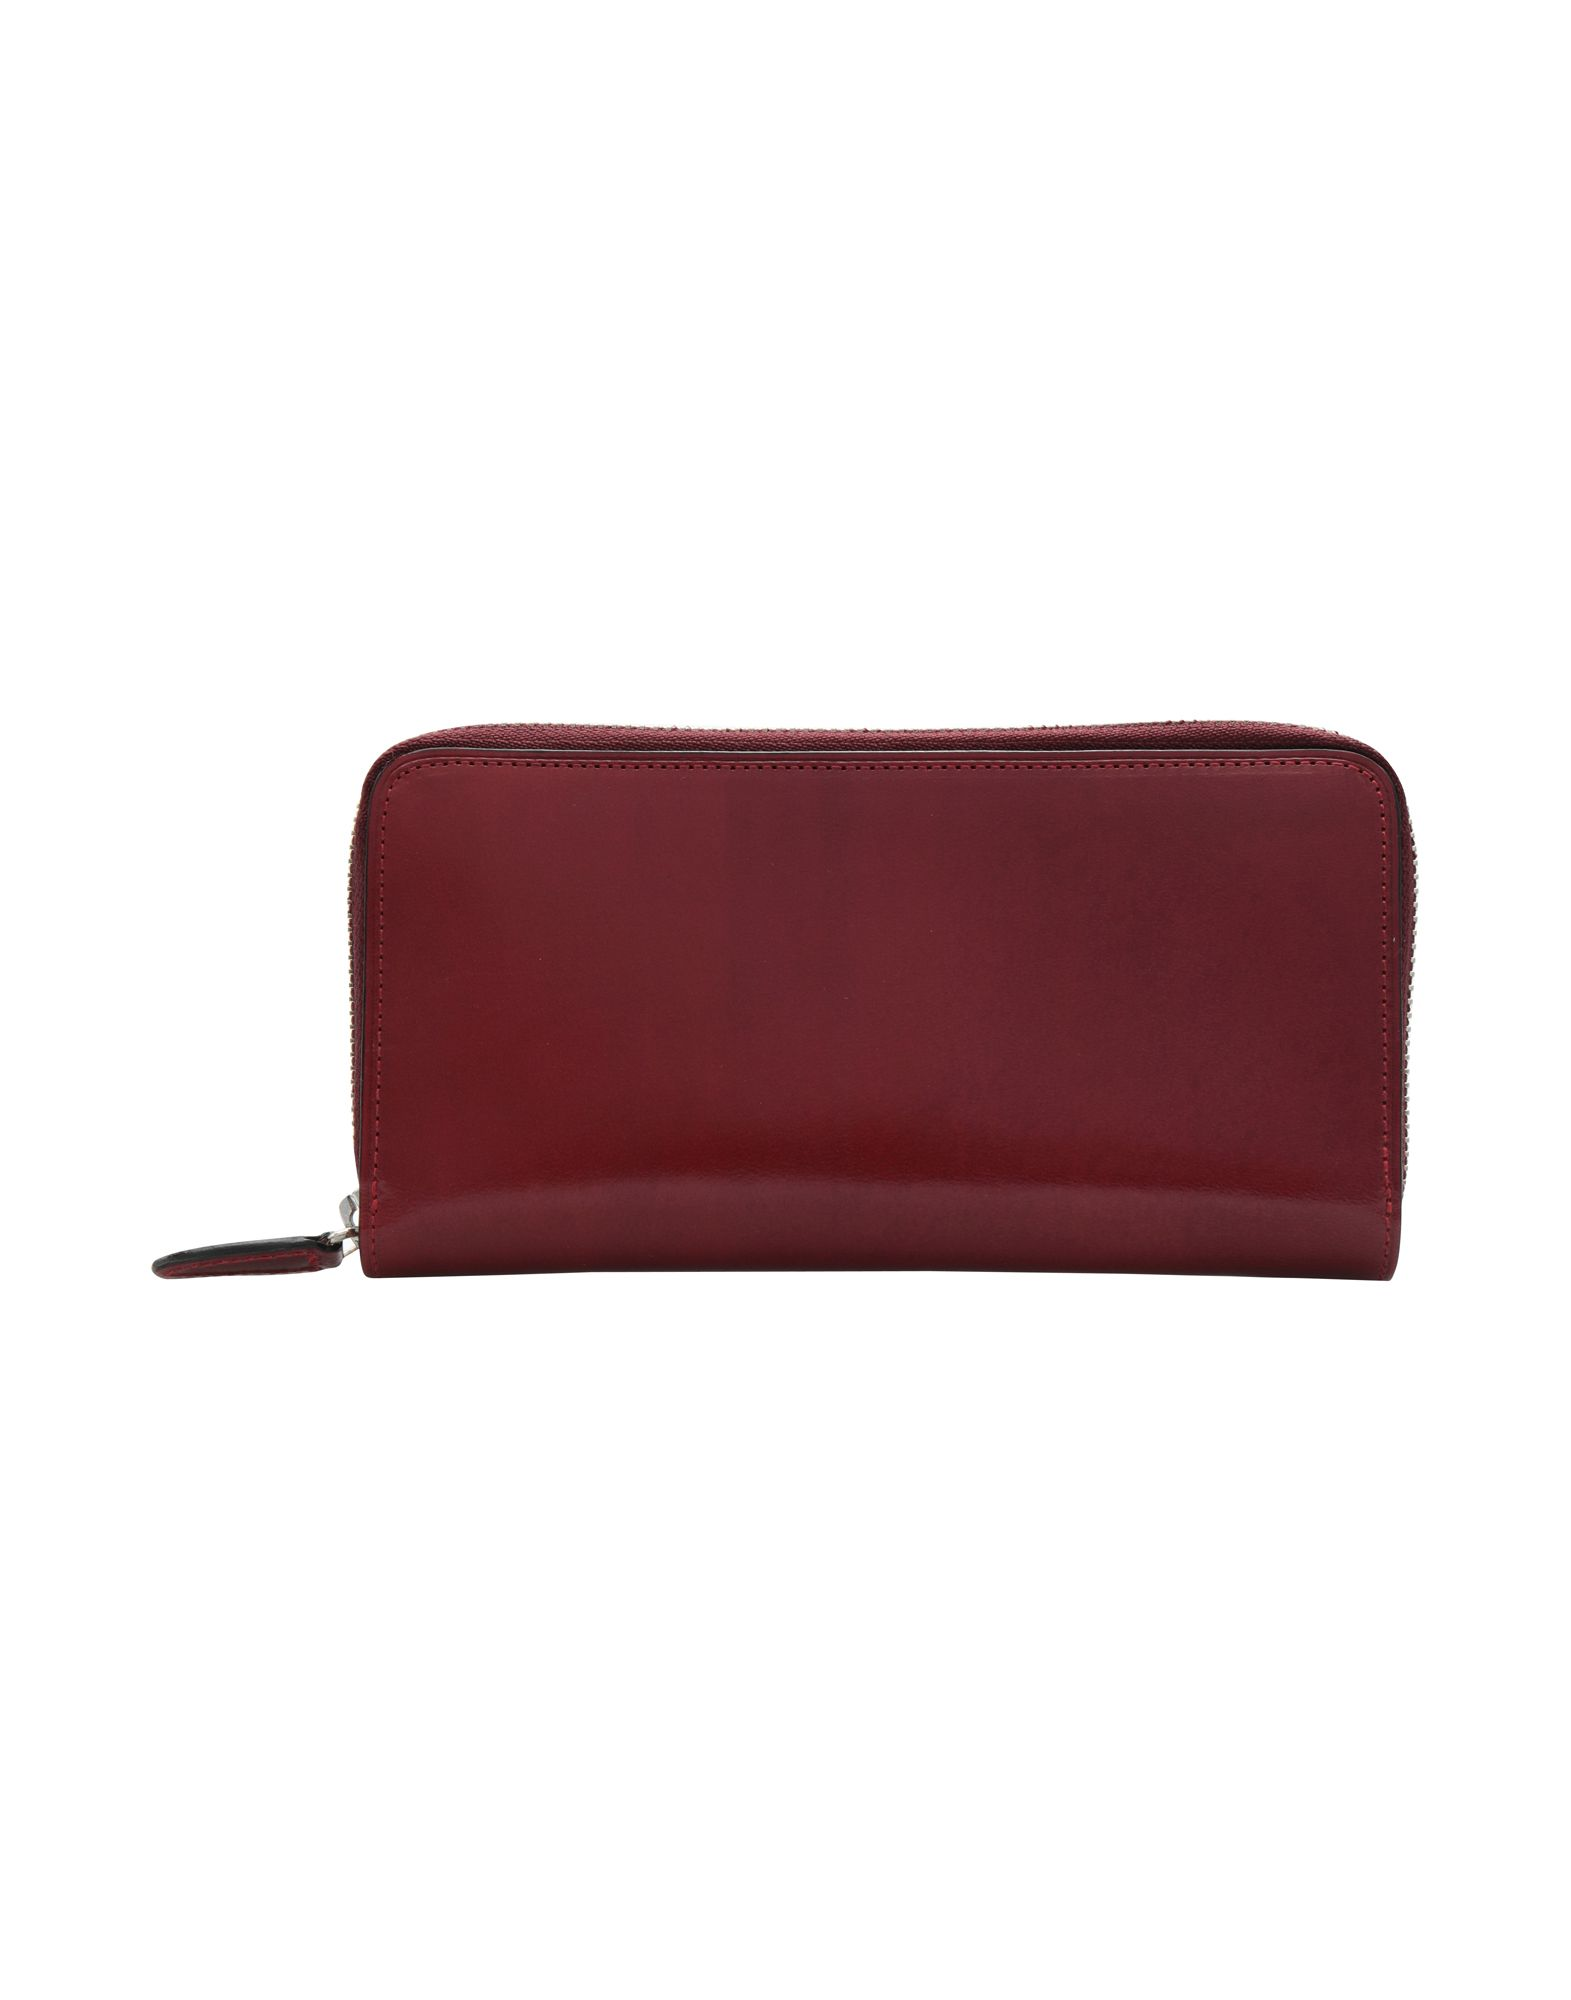 IL BUSSETTO Wallet in Maroon